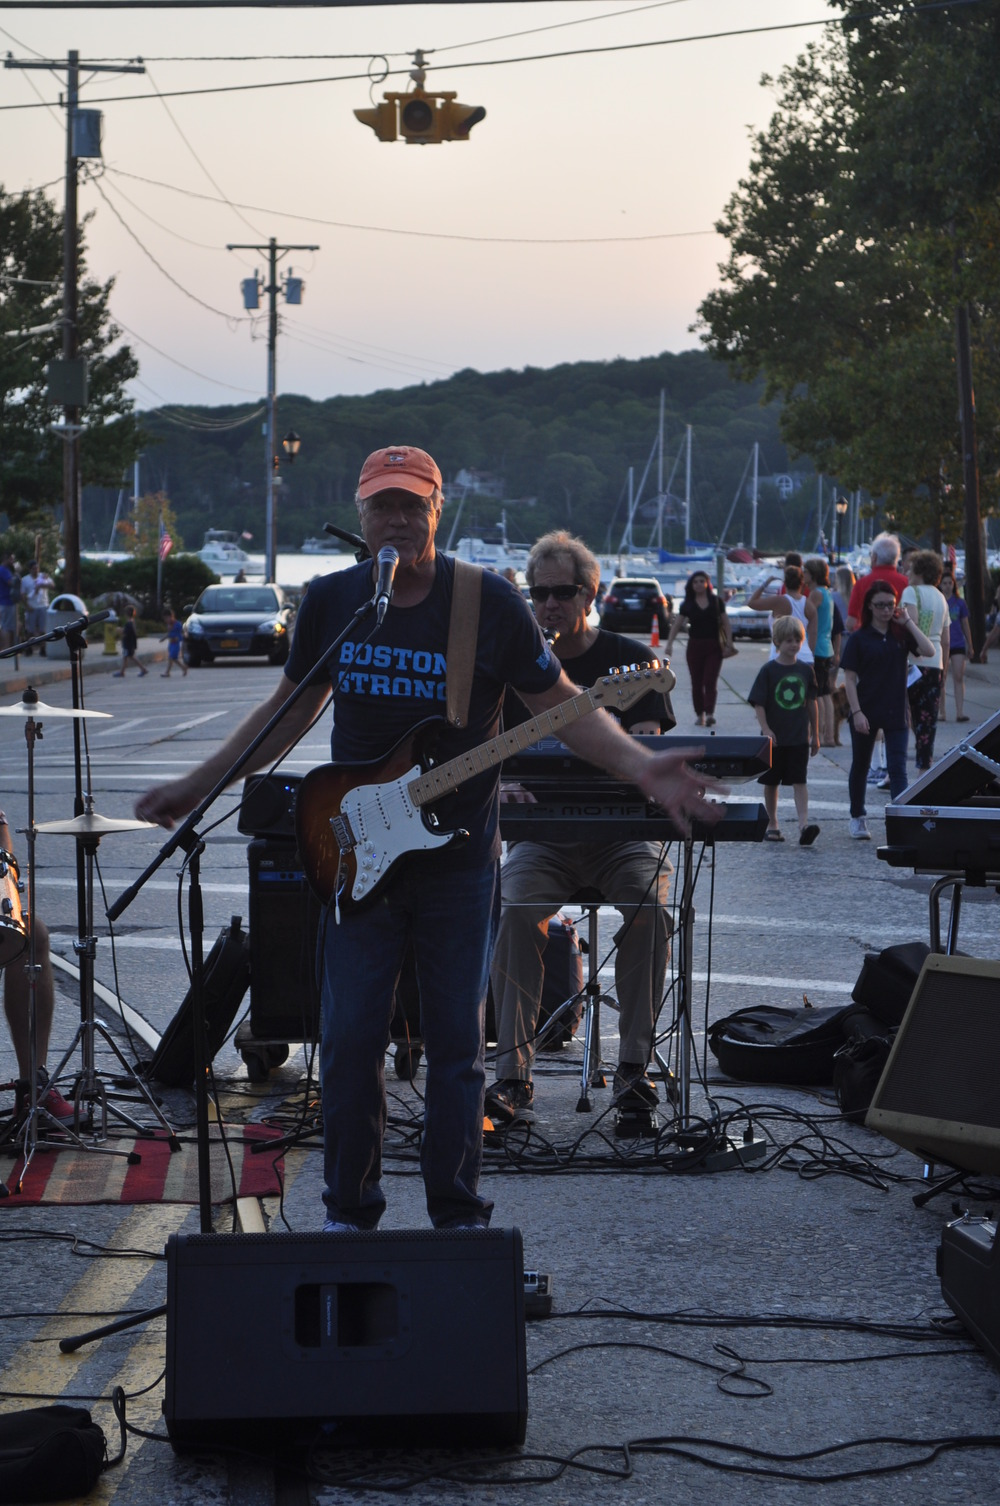 The Late Night Audio Band performs with the harbor as their backdrop.